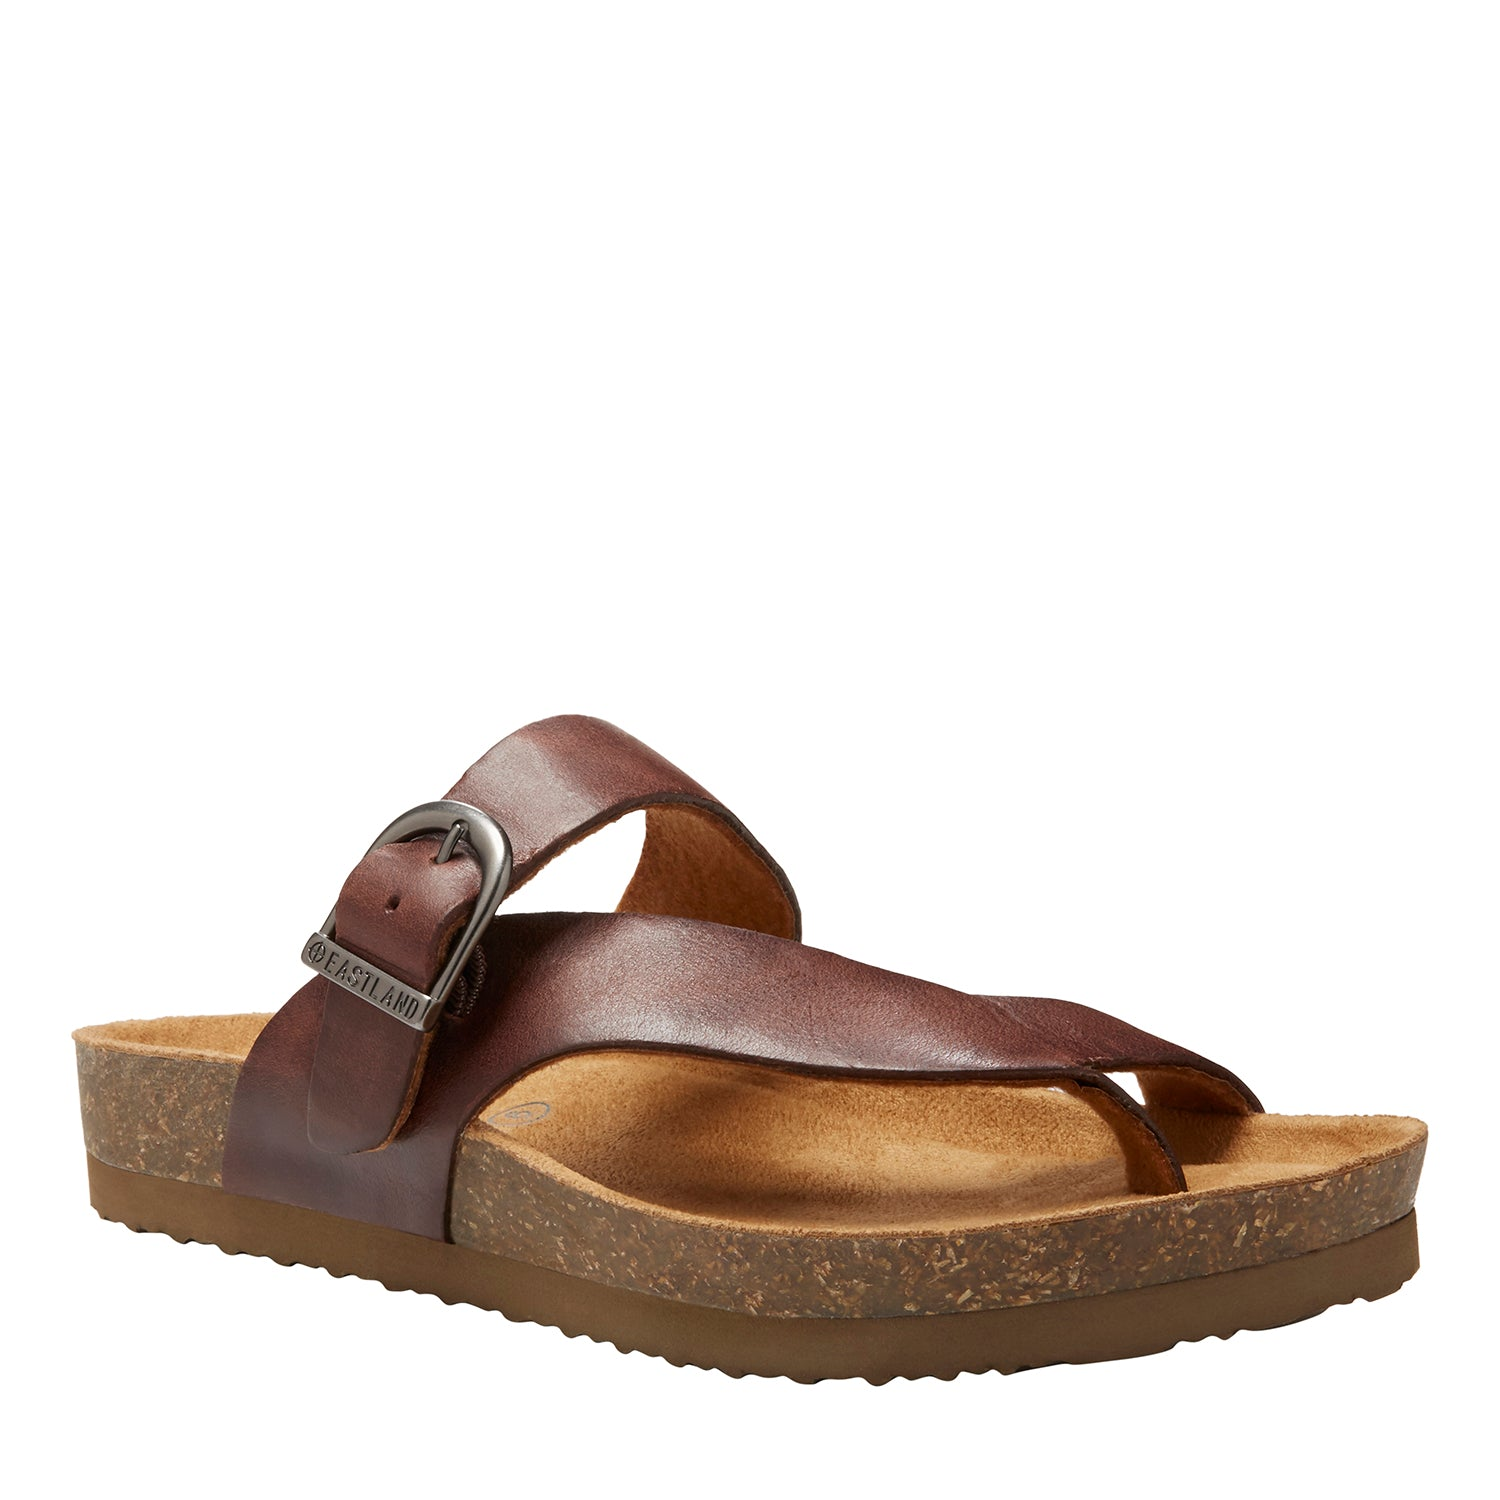 'Eastland' 3402-79 - Shauna Adjustable Sandal - Dark Walnut